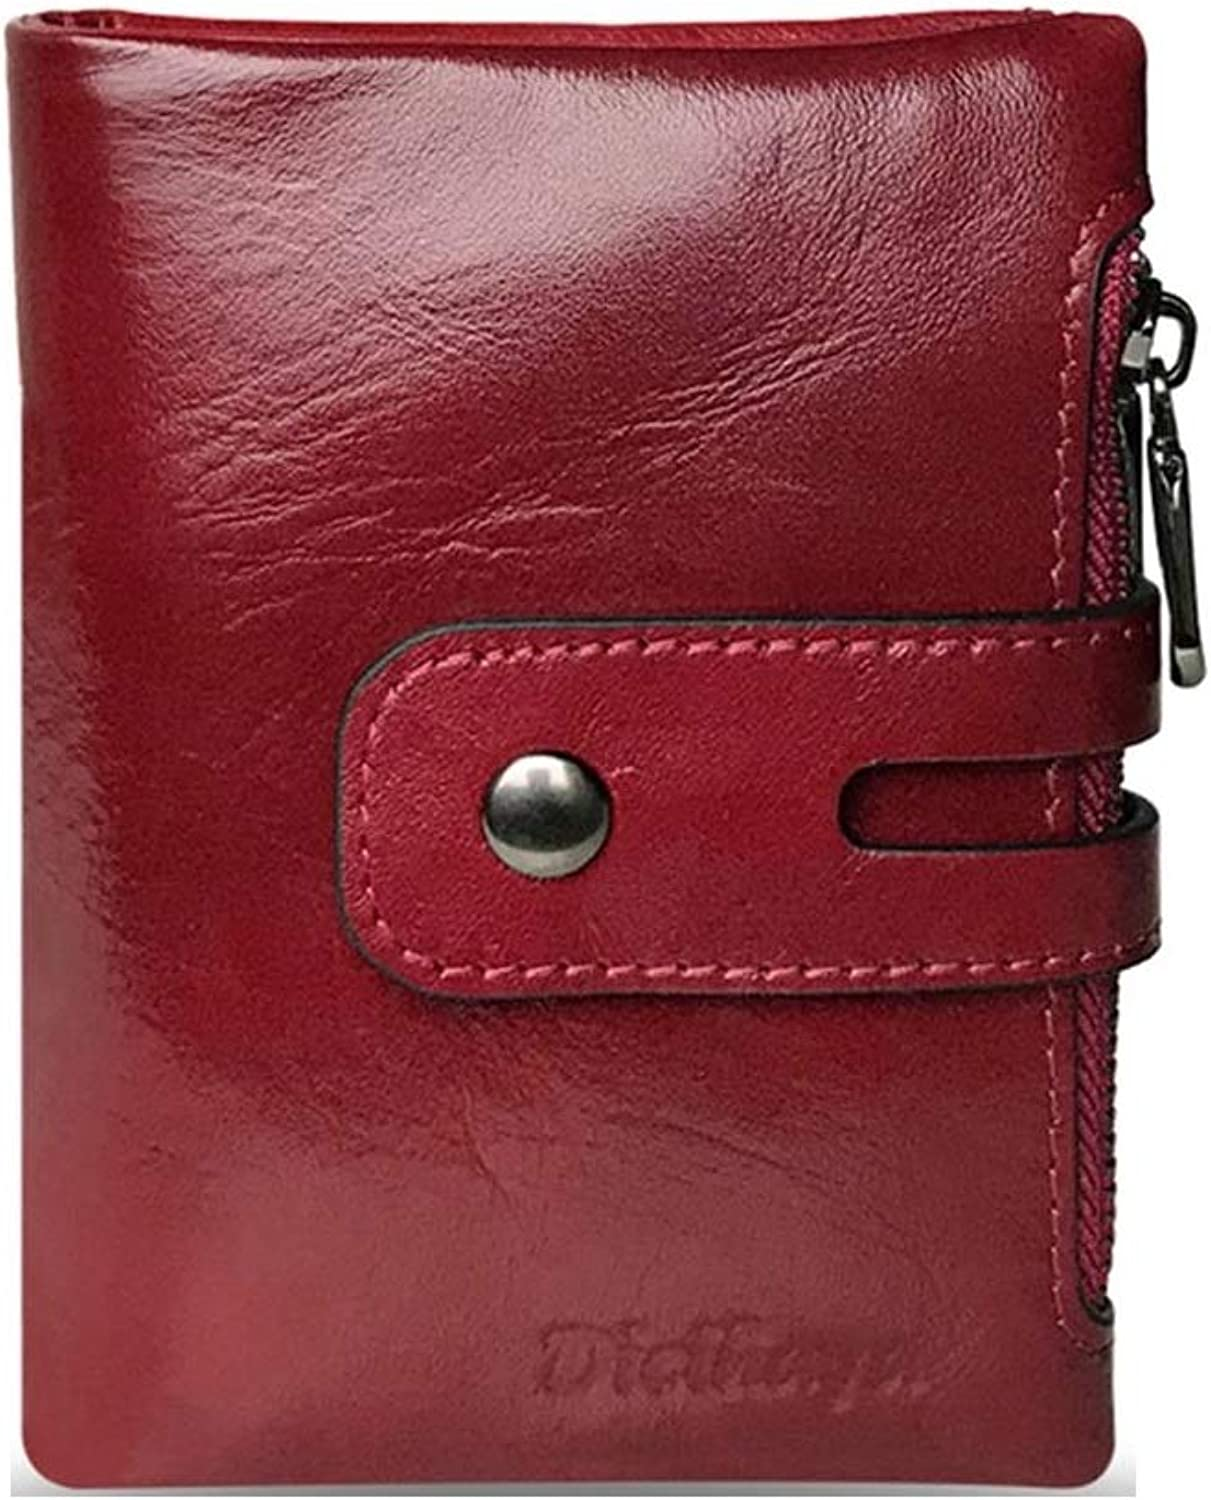 WeoHau Women Pu Short Wallet MultiFunction Large Capacity Double Zipper Card Package Wine Red